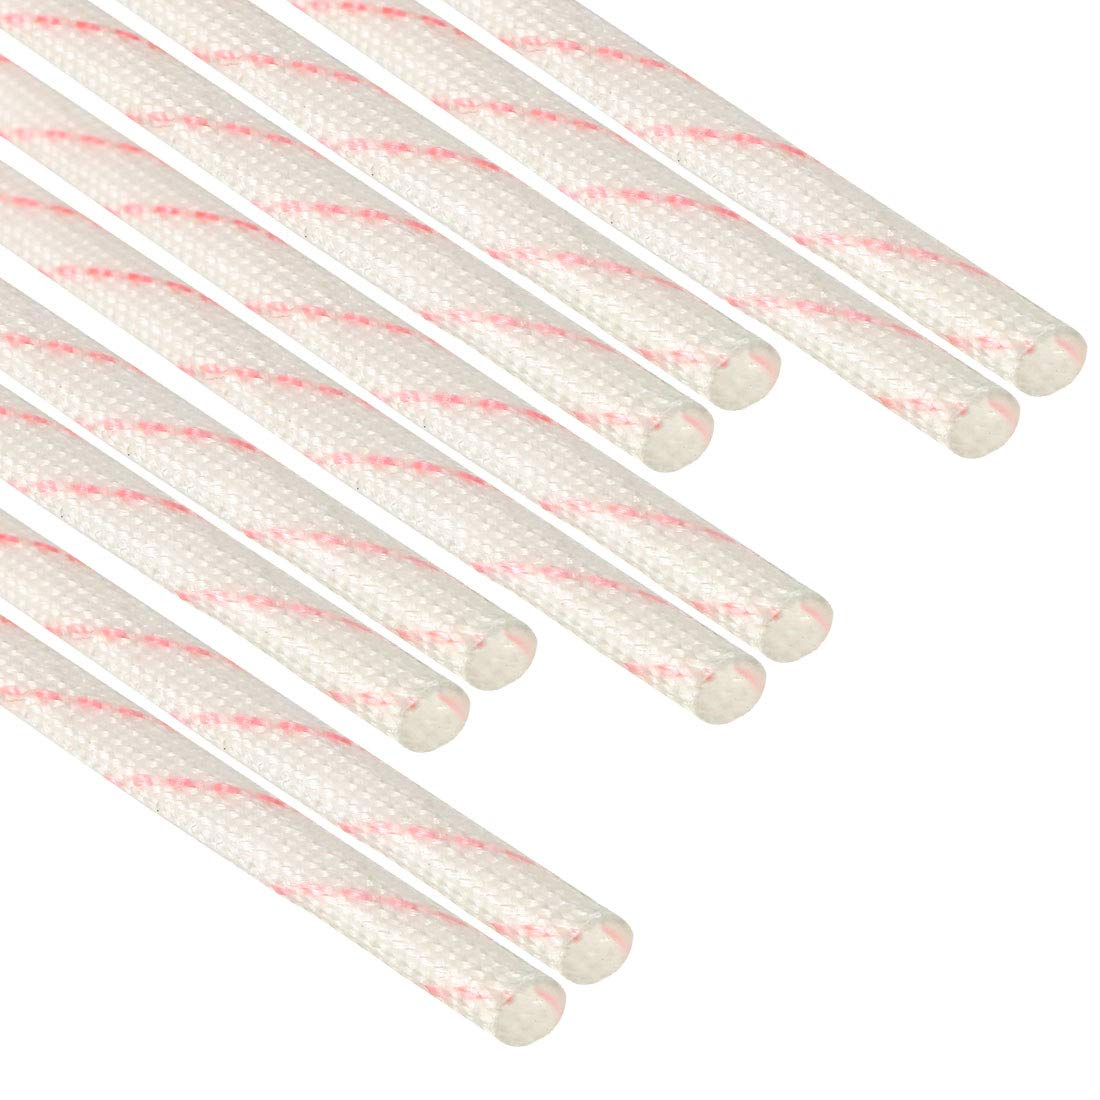 PVC Insulation Tubing 1500V Tube Adjustable Sleeving Pipe 125 Degree Centigrade Cable Wrap Wire 895mm 2.94ft 10pcs uxcell Fiberglass Sleeve 10mm I.D